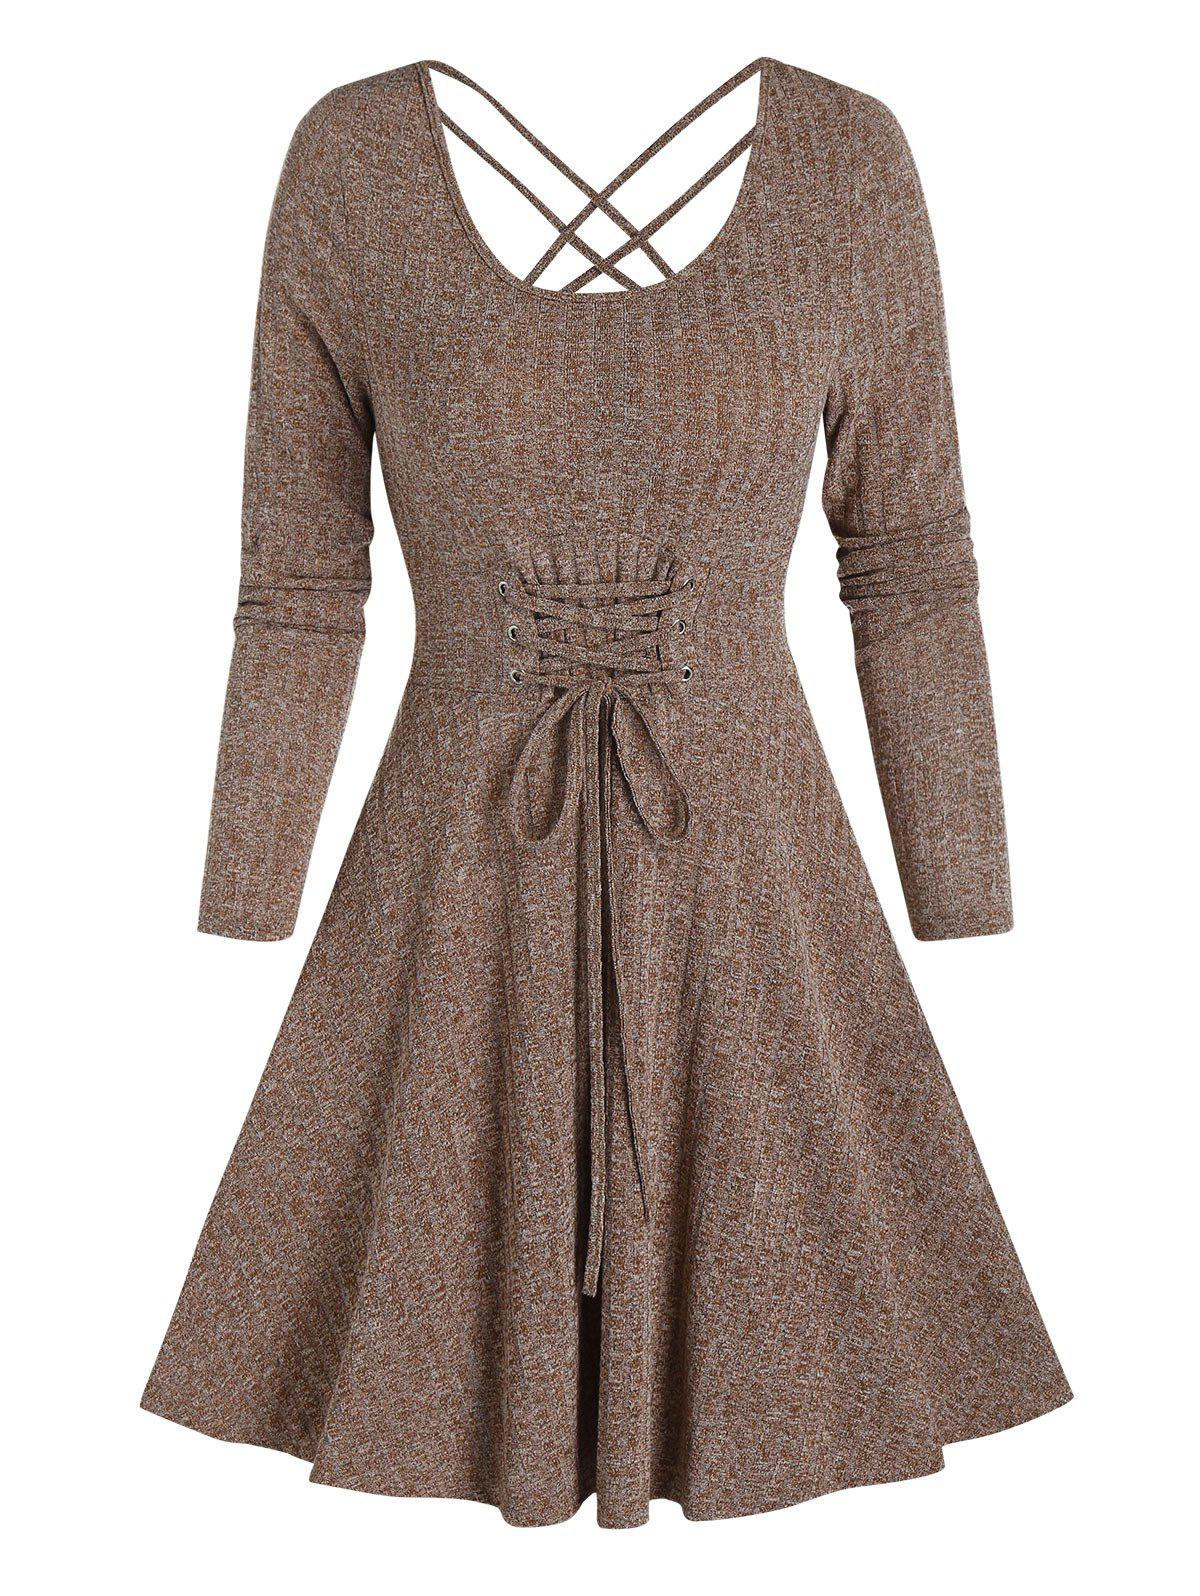 Lace-up Front Heathered Ribbed Dress - COFFEE 3XL